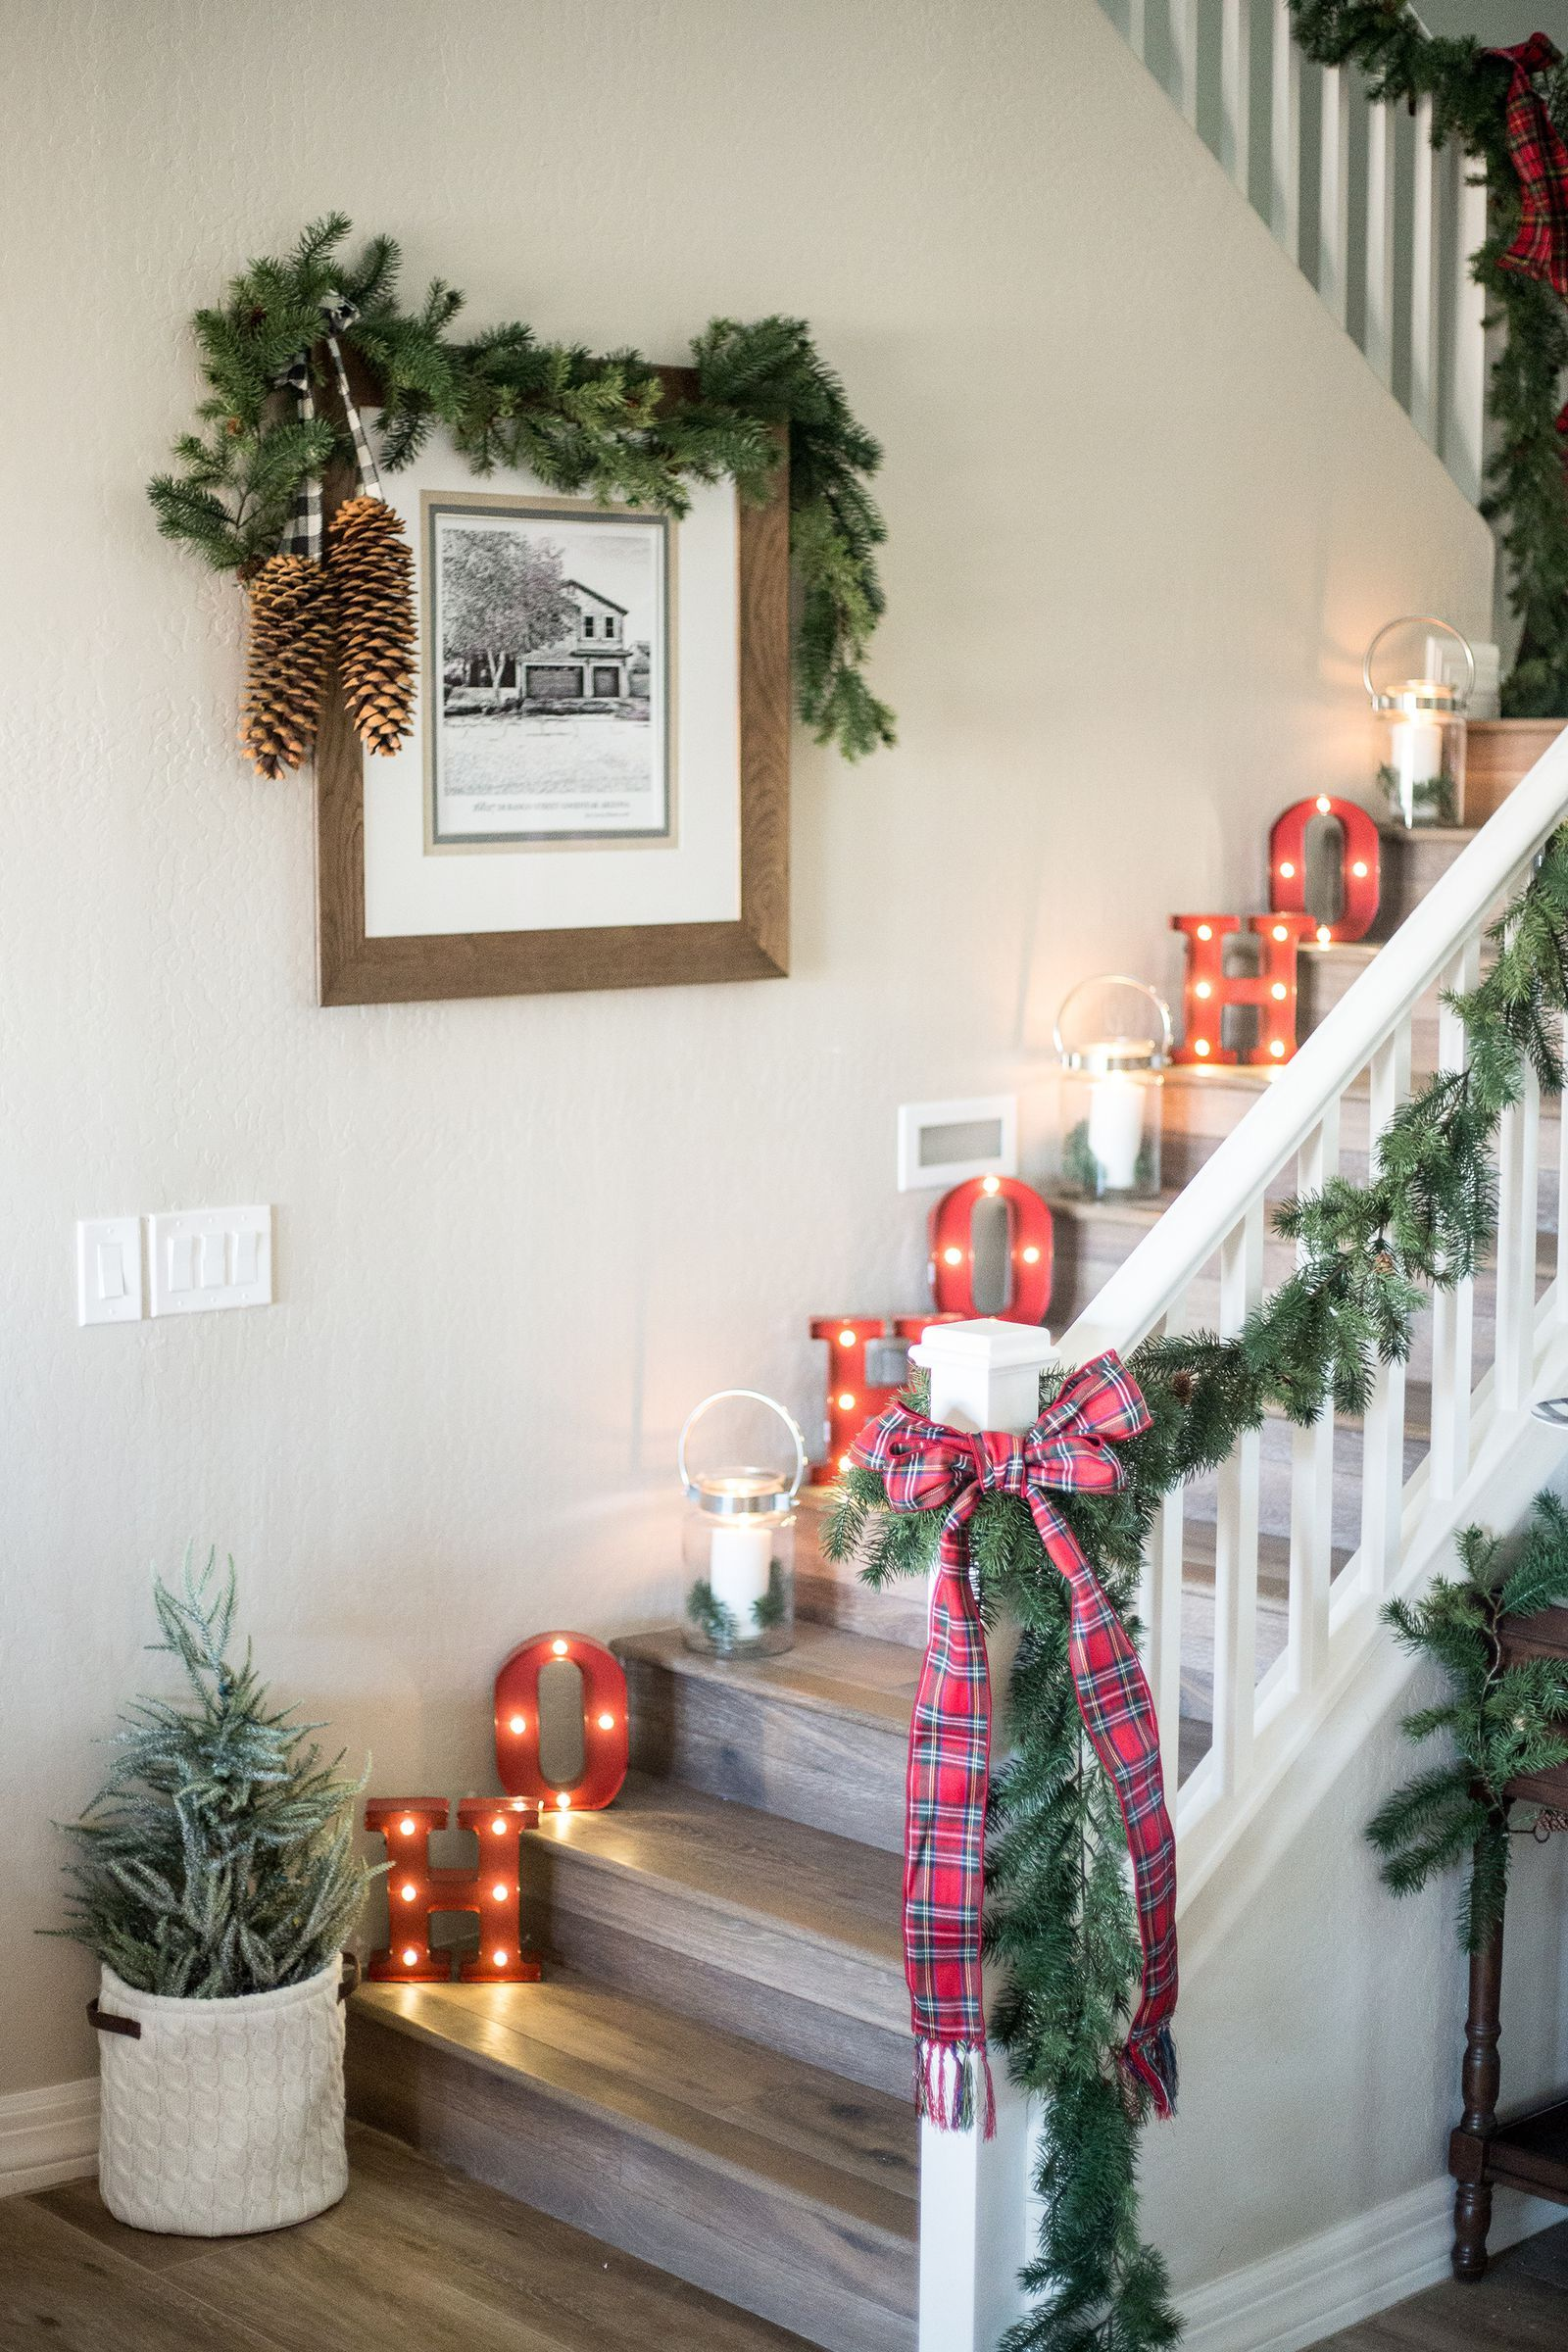 15 Chic Ways To Incorporate Christmas Lights Into A Small